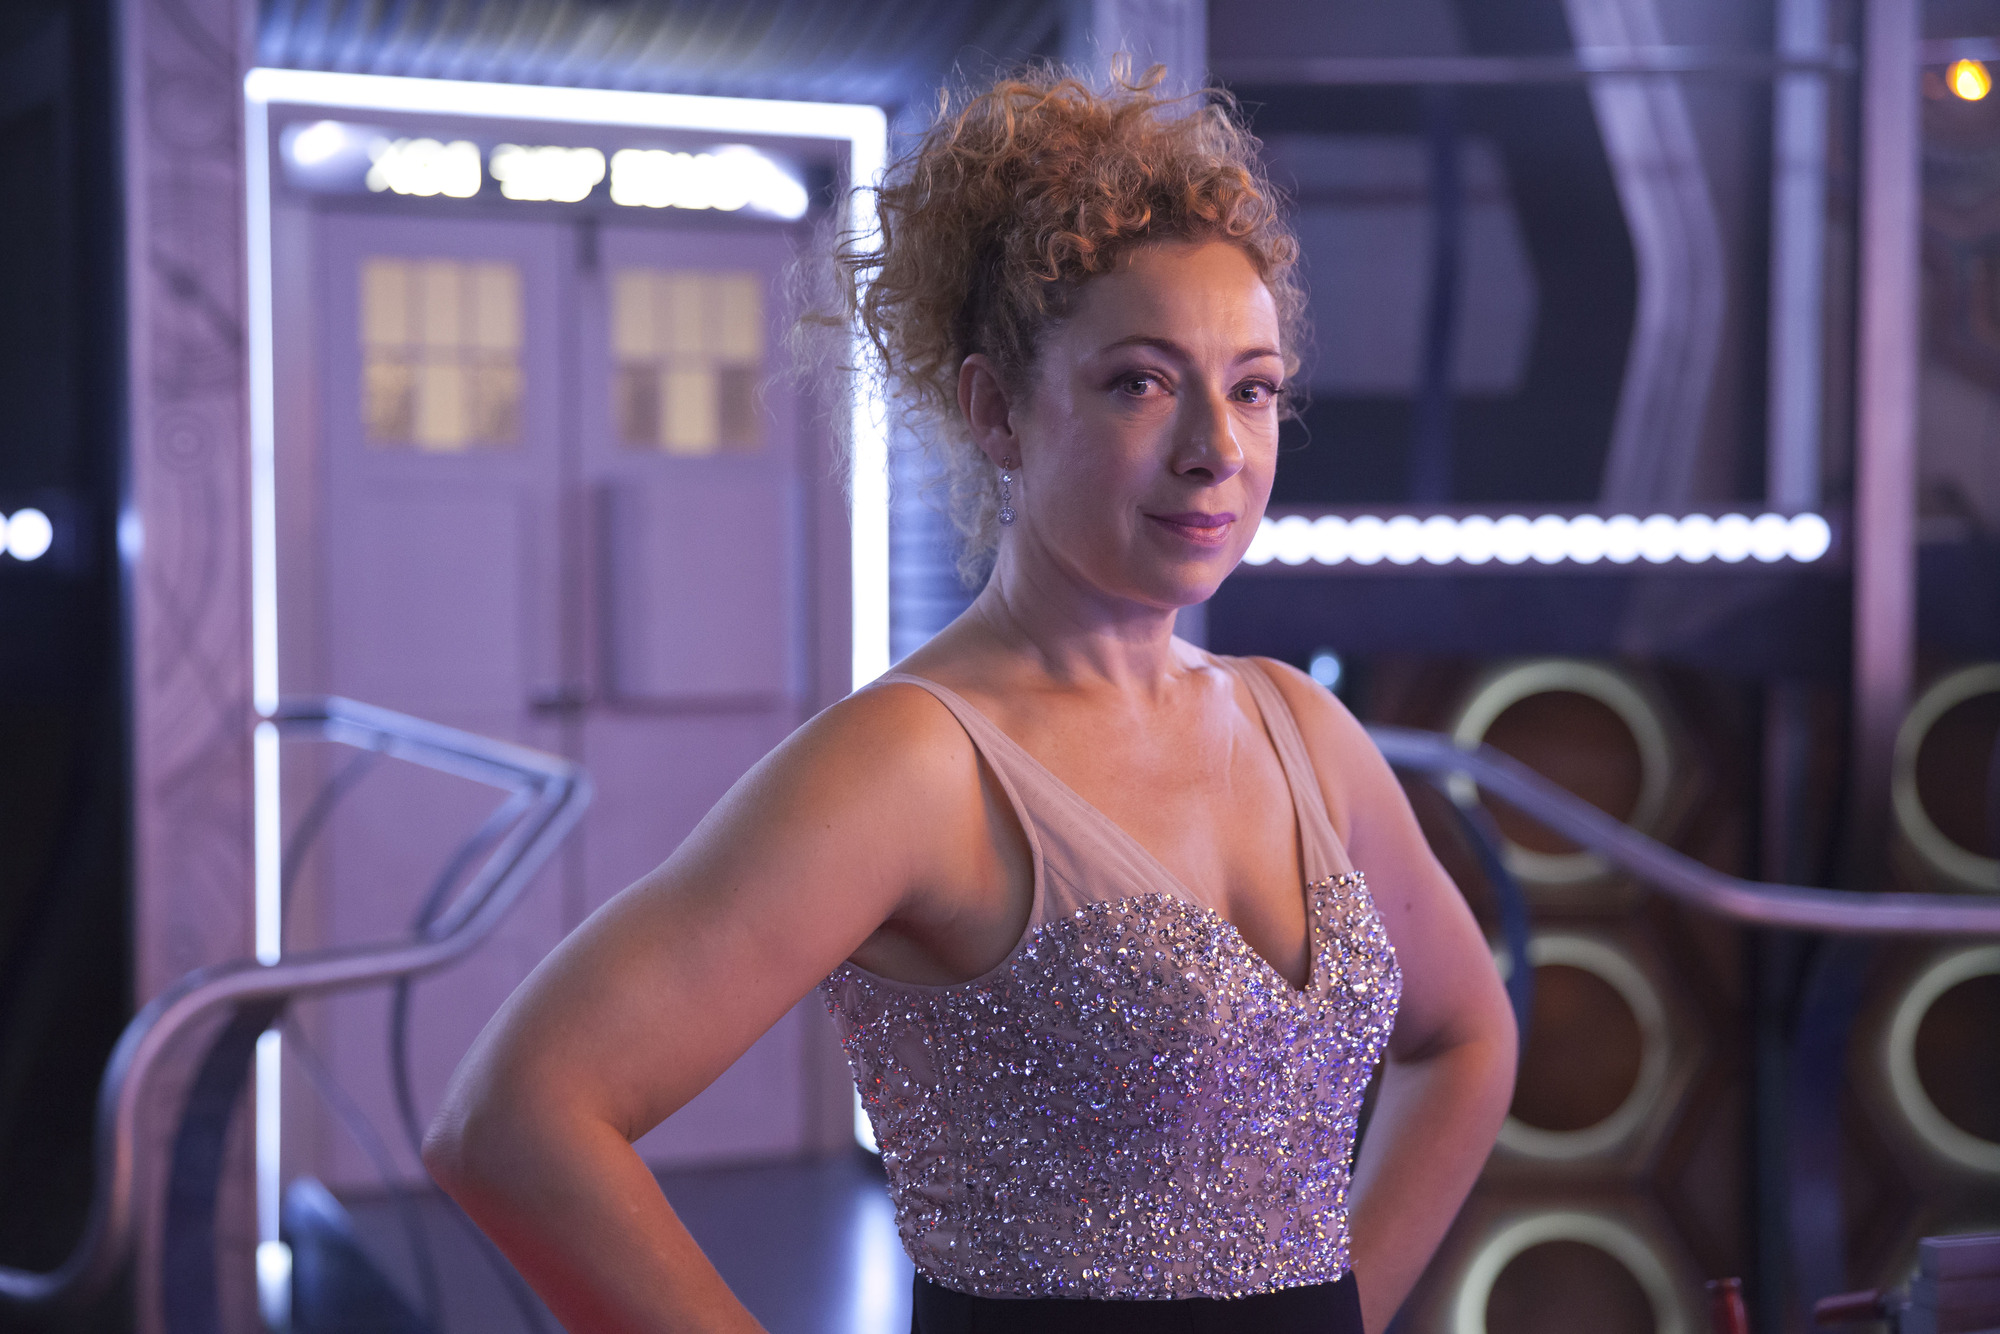 With Peter Capaldi leaving Doctor Who, it's finally time for a female Doctor